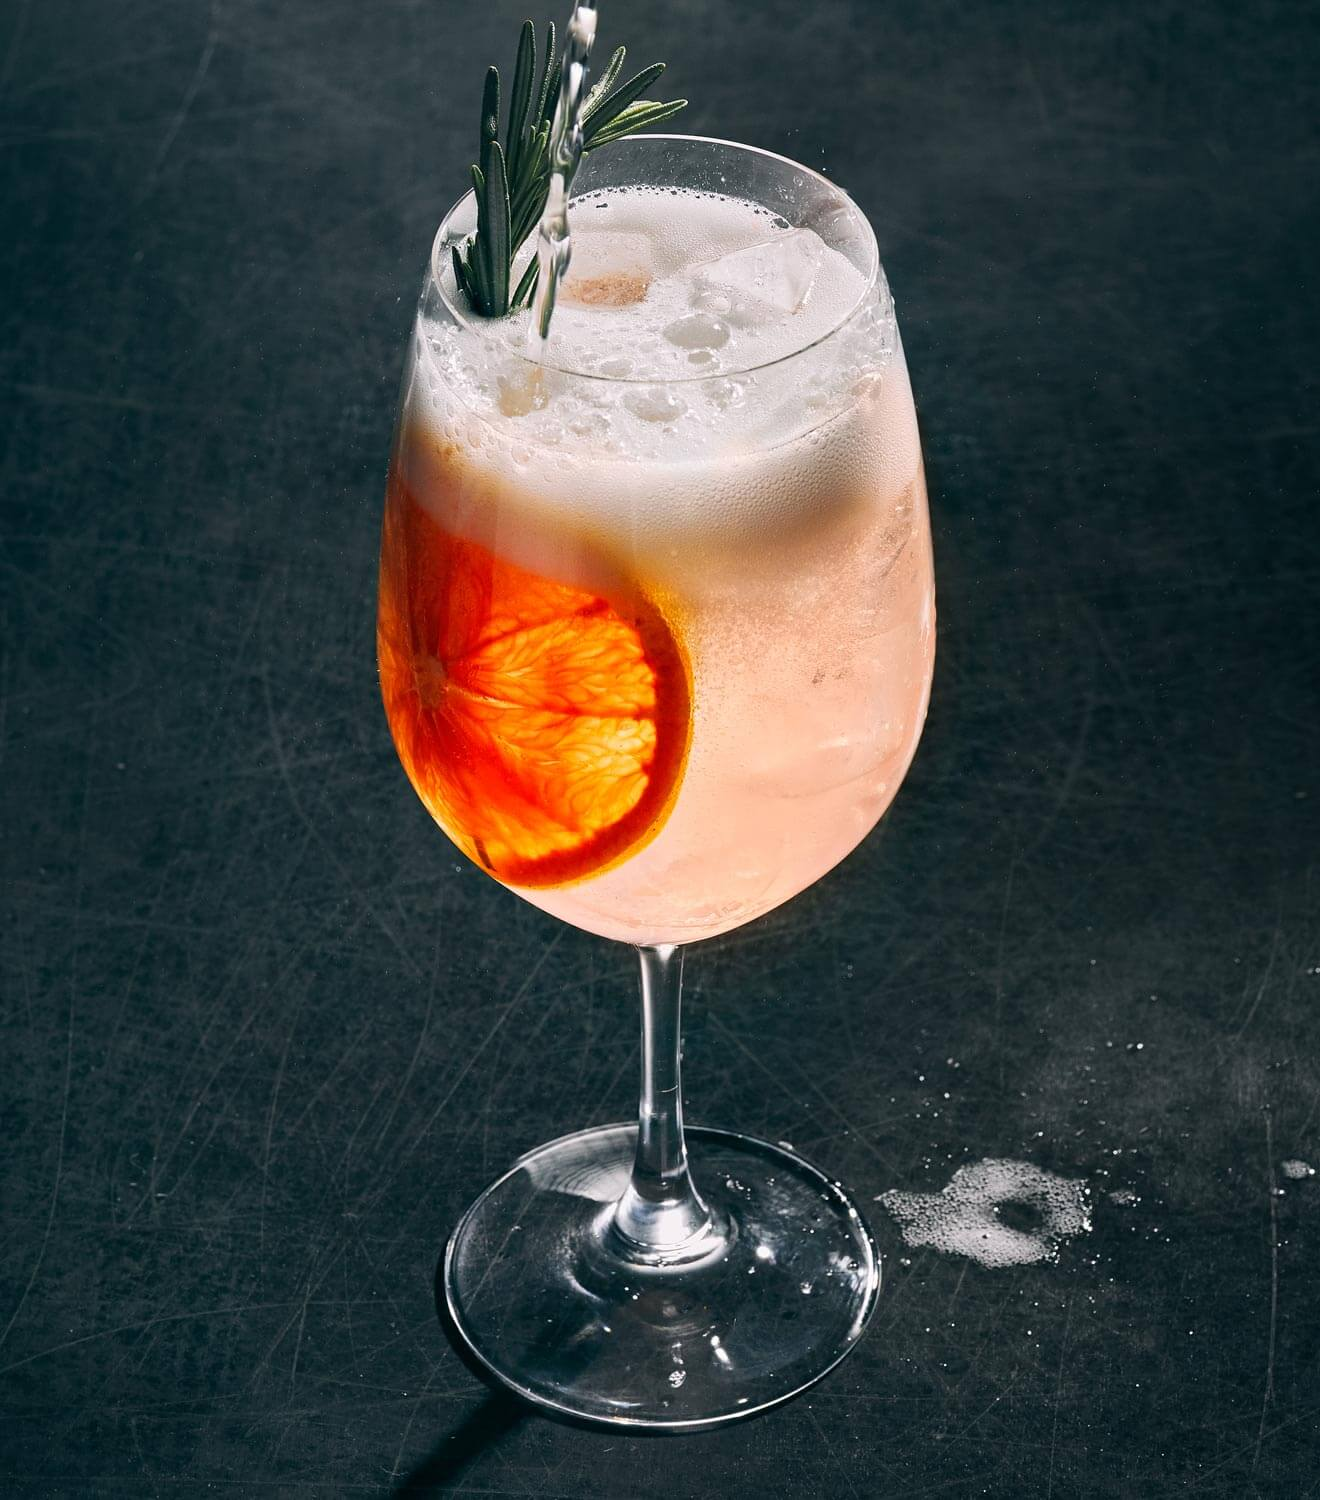 Pampelmousse Spritz cocktail with garnish